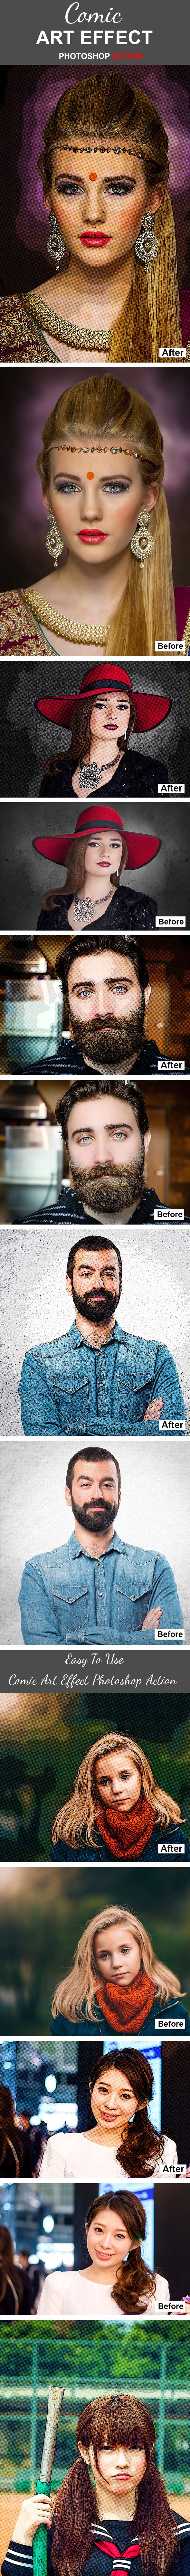 Comic Art Effect Photoshop Action - Photo Effects Actions